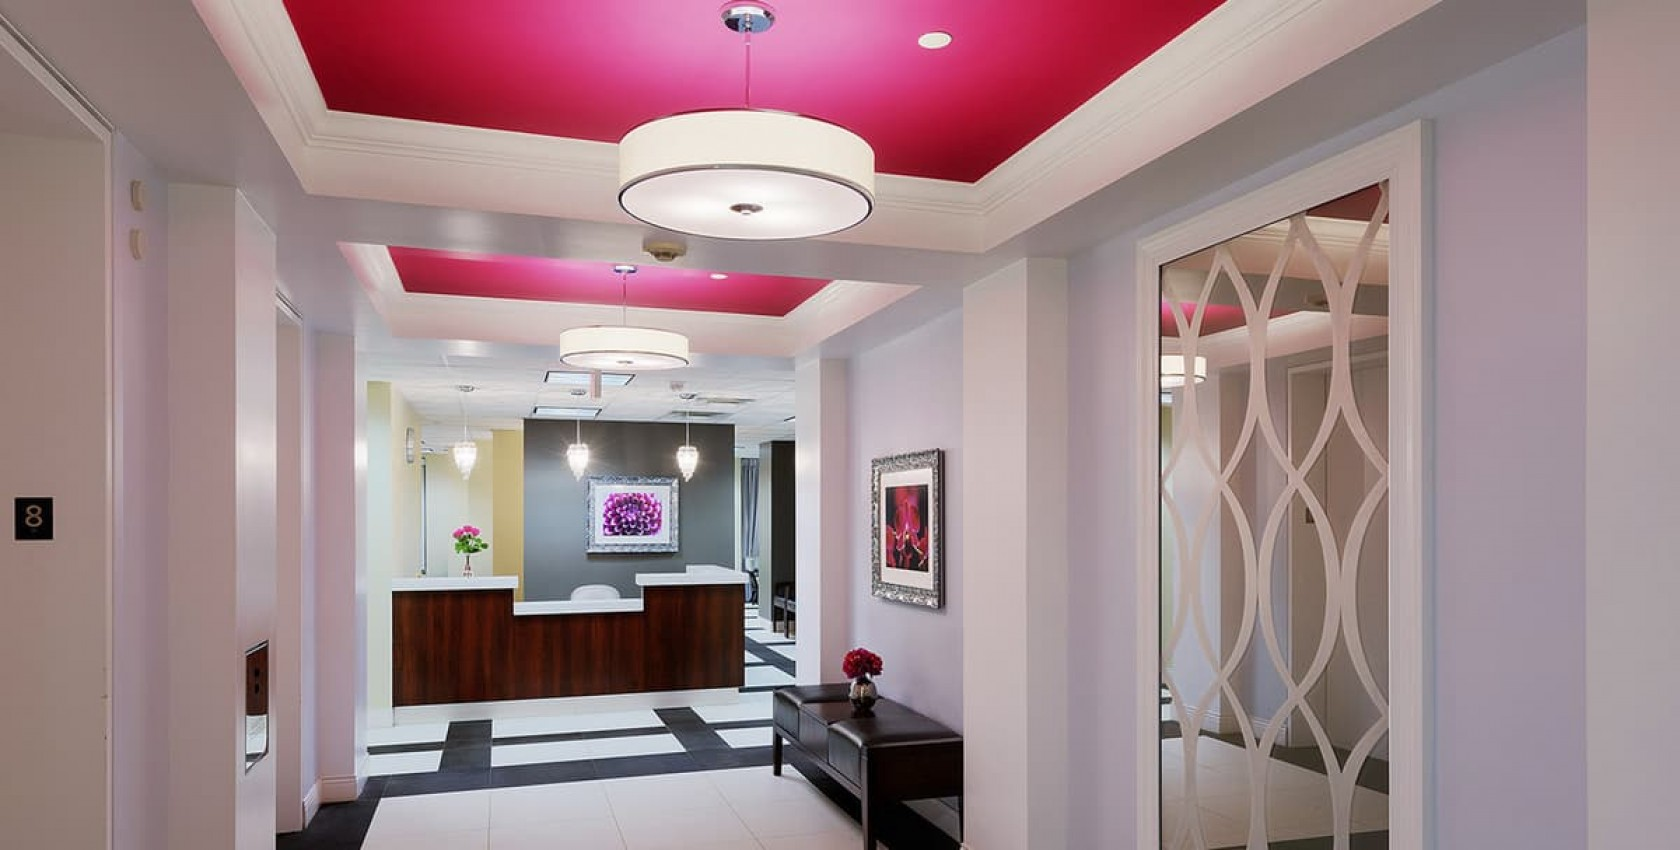 gwu breast cancer center healthcare - Gwu Interior Design